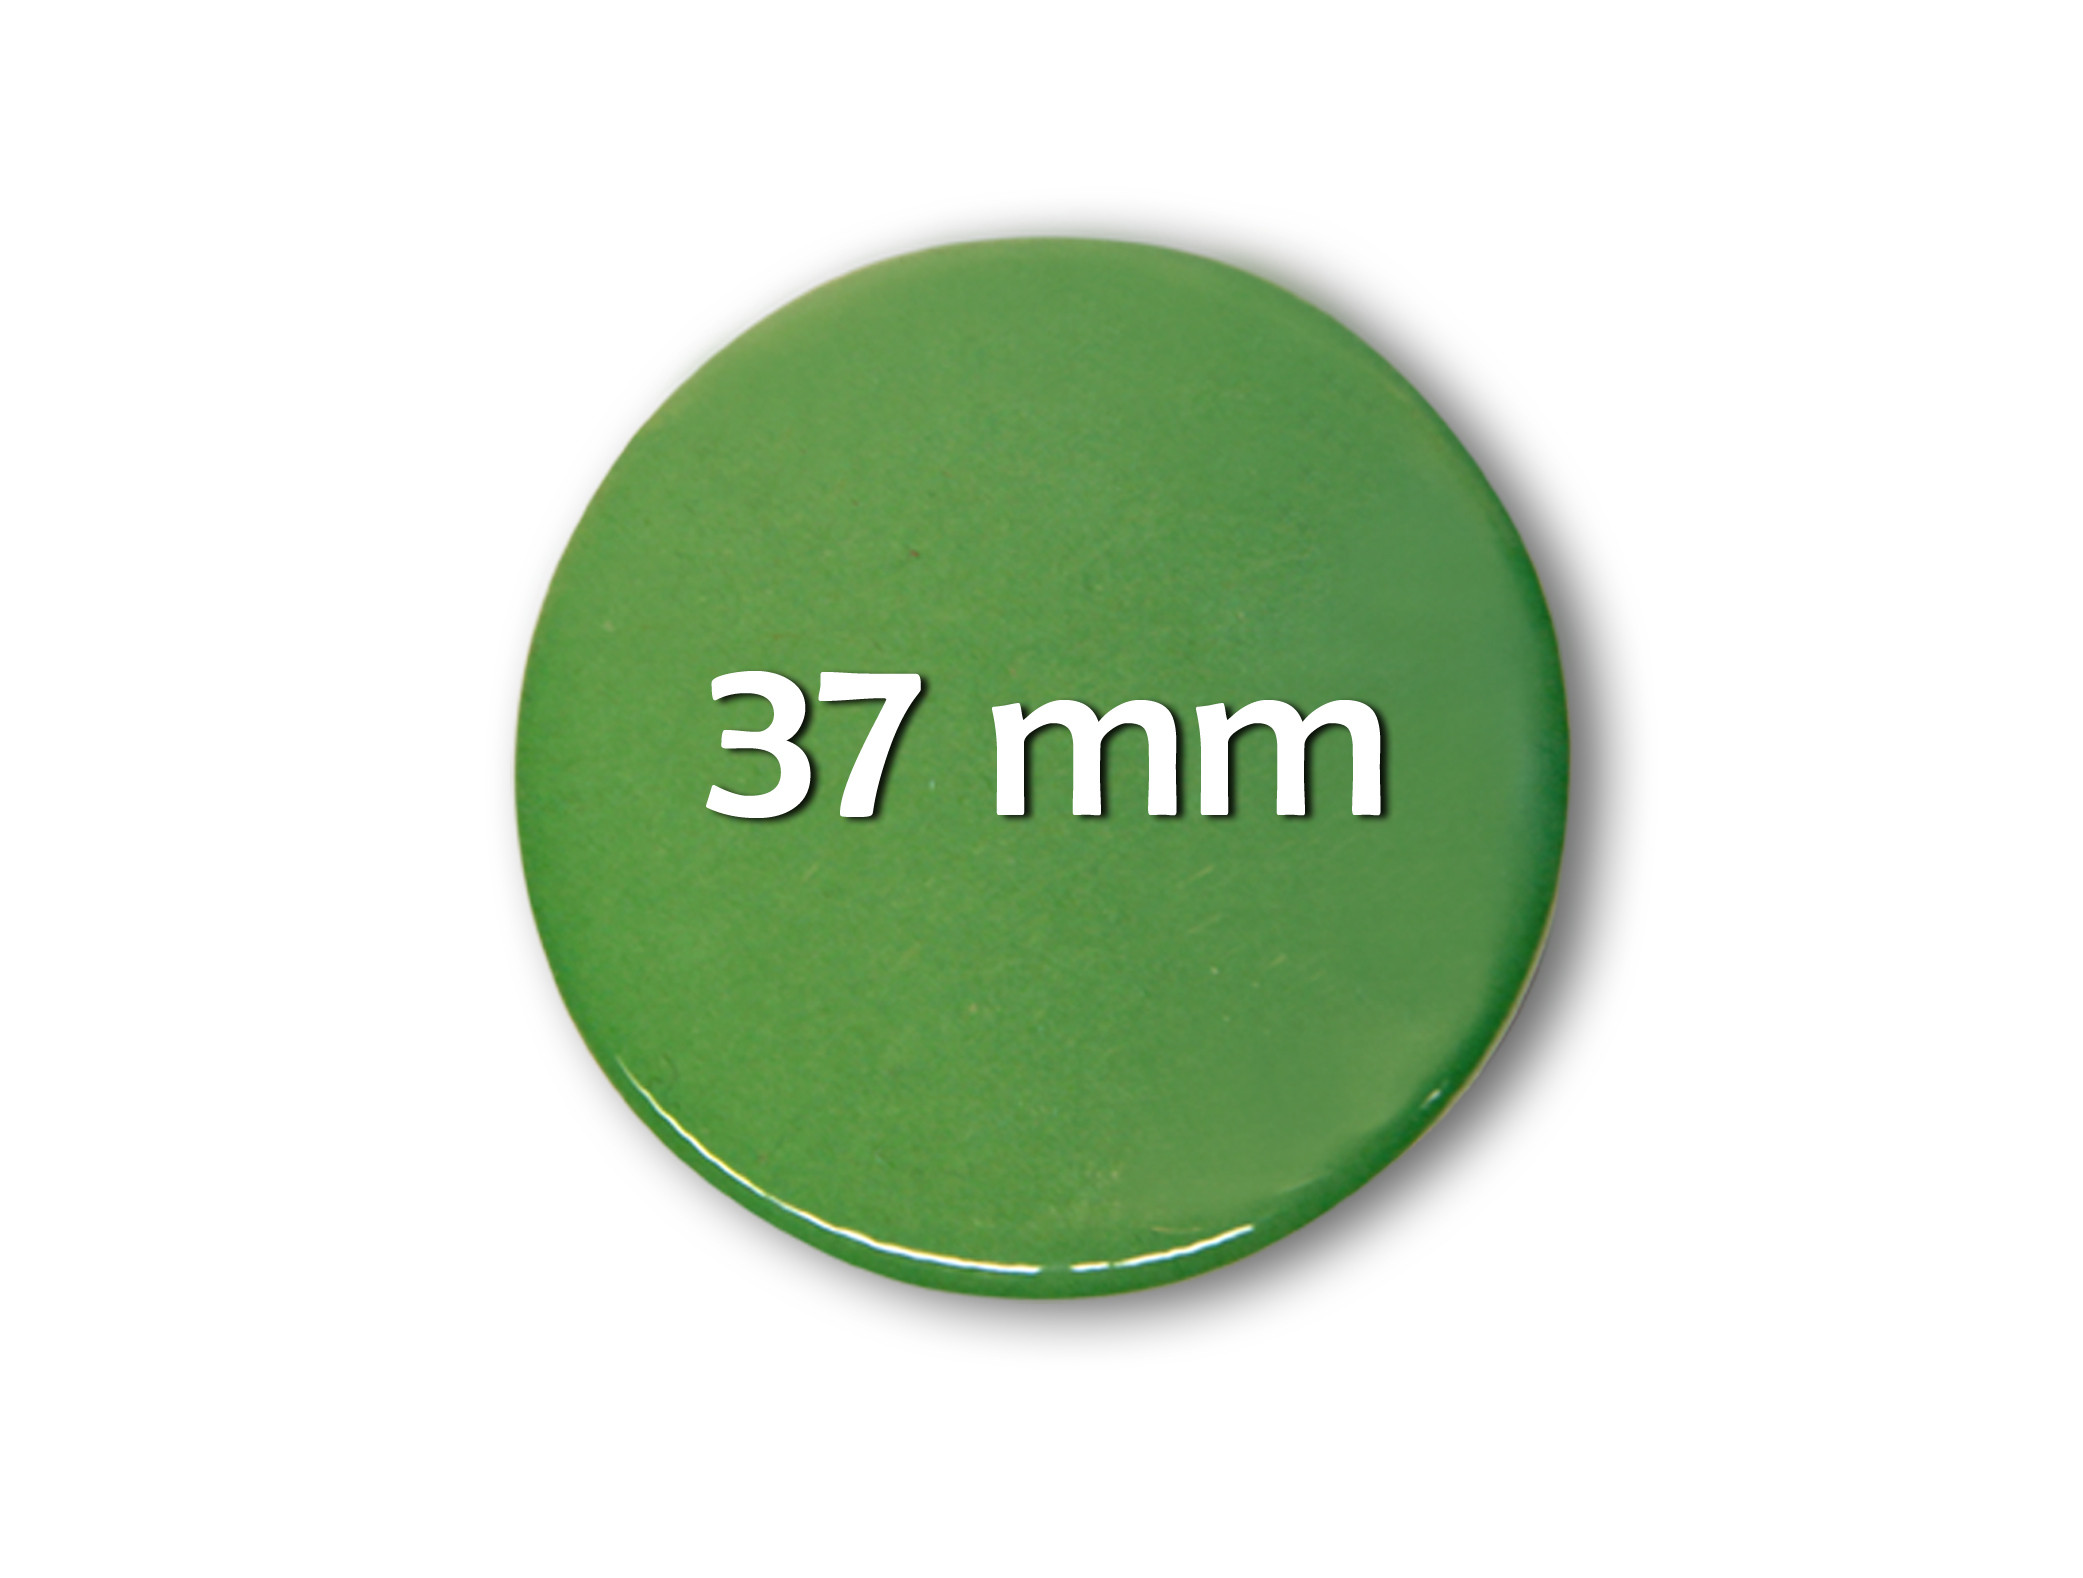 37mm Fertigbutton